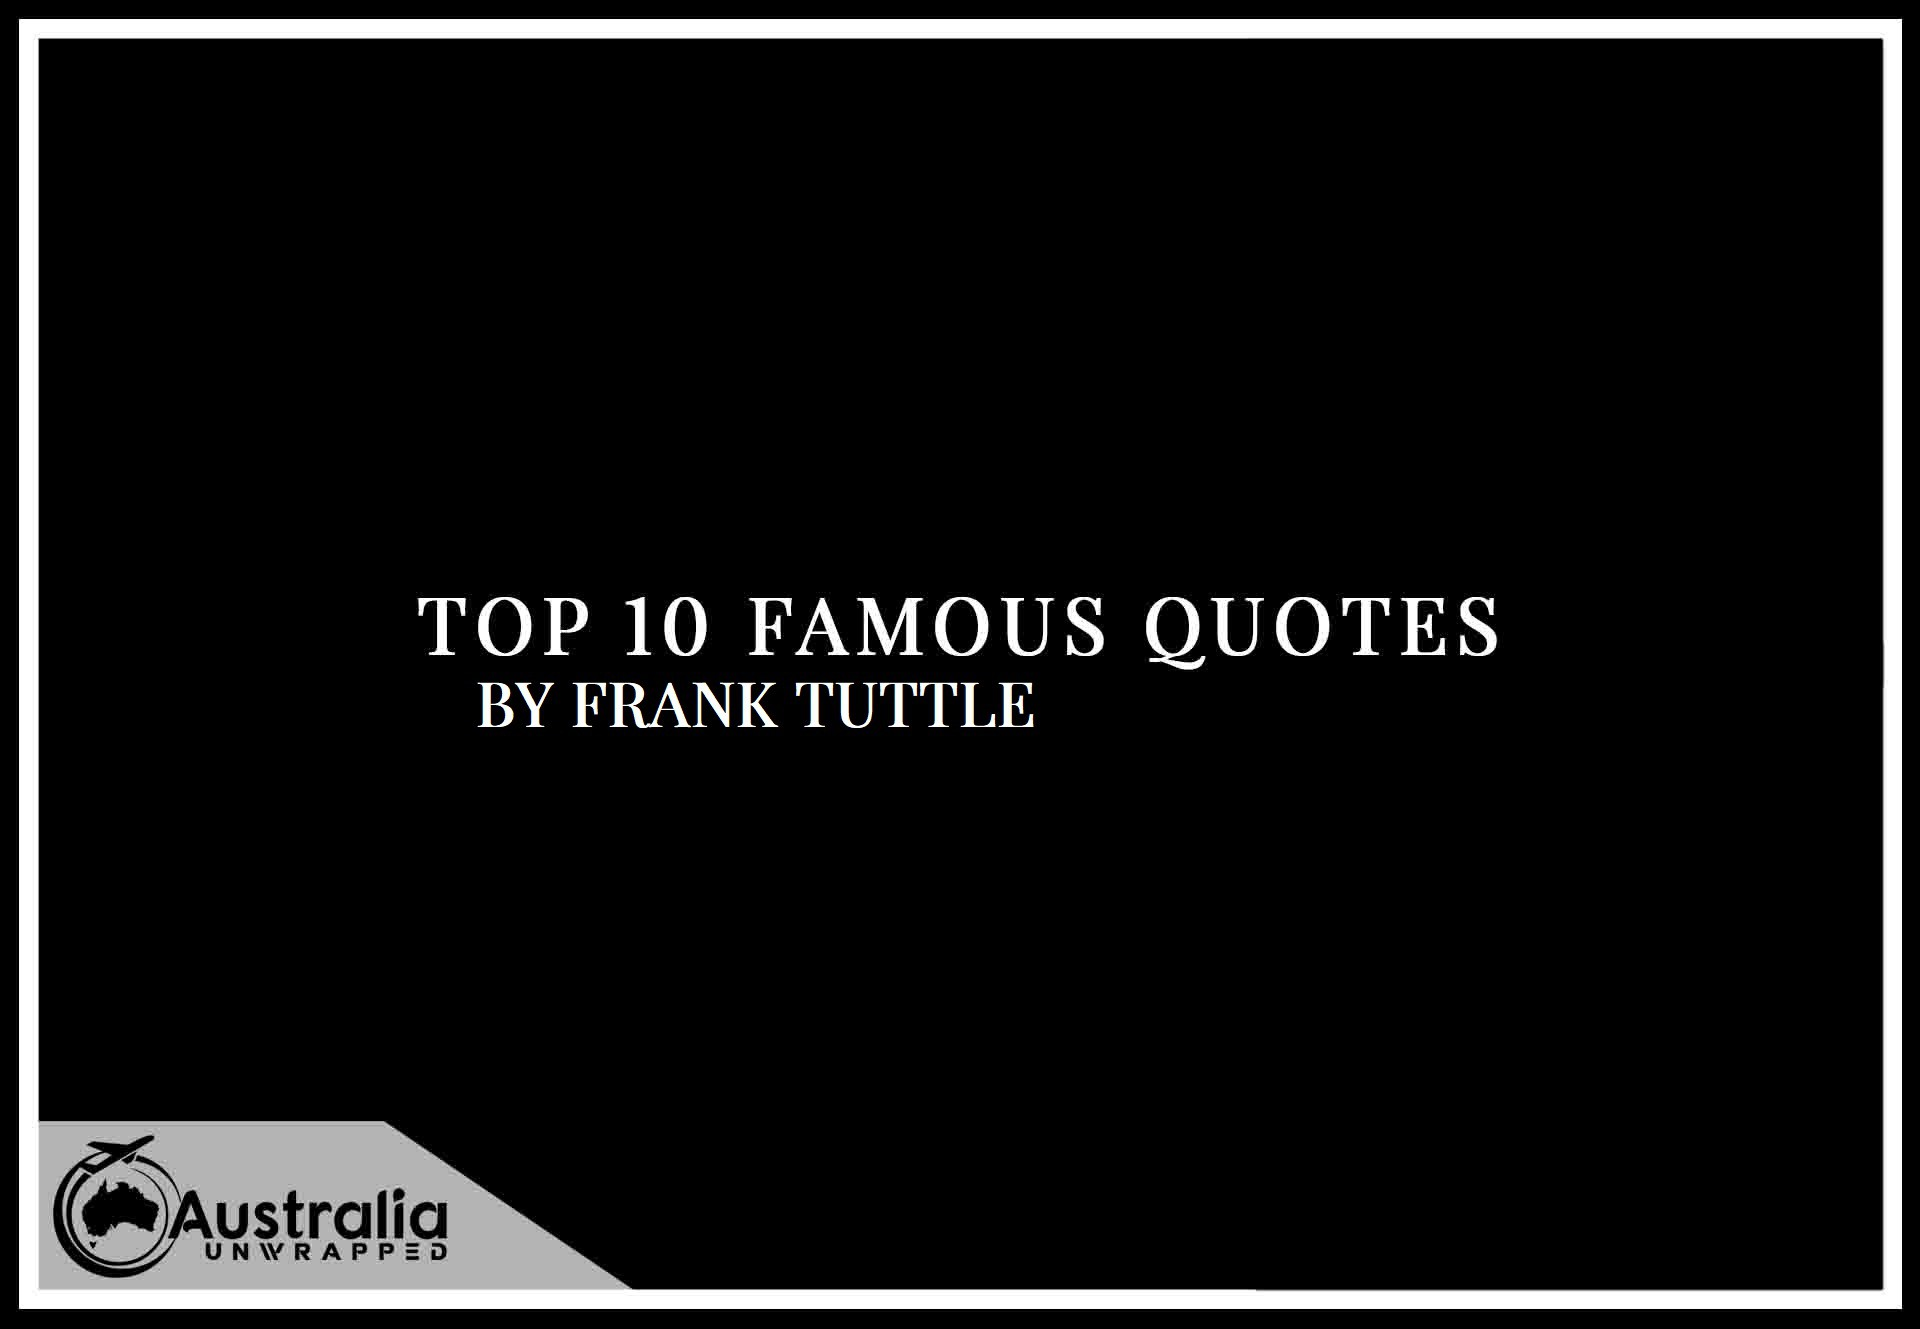 Top 10 Famous Quotes by Author Frank Tuttle